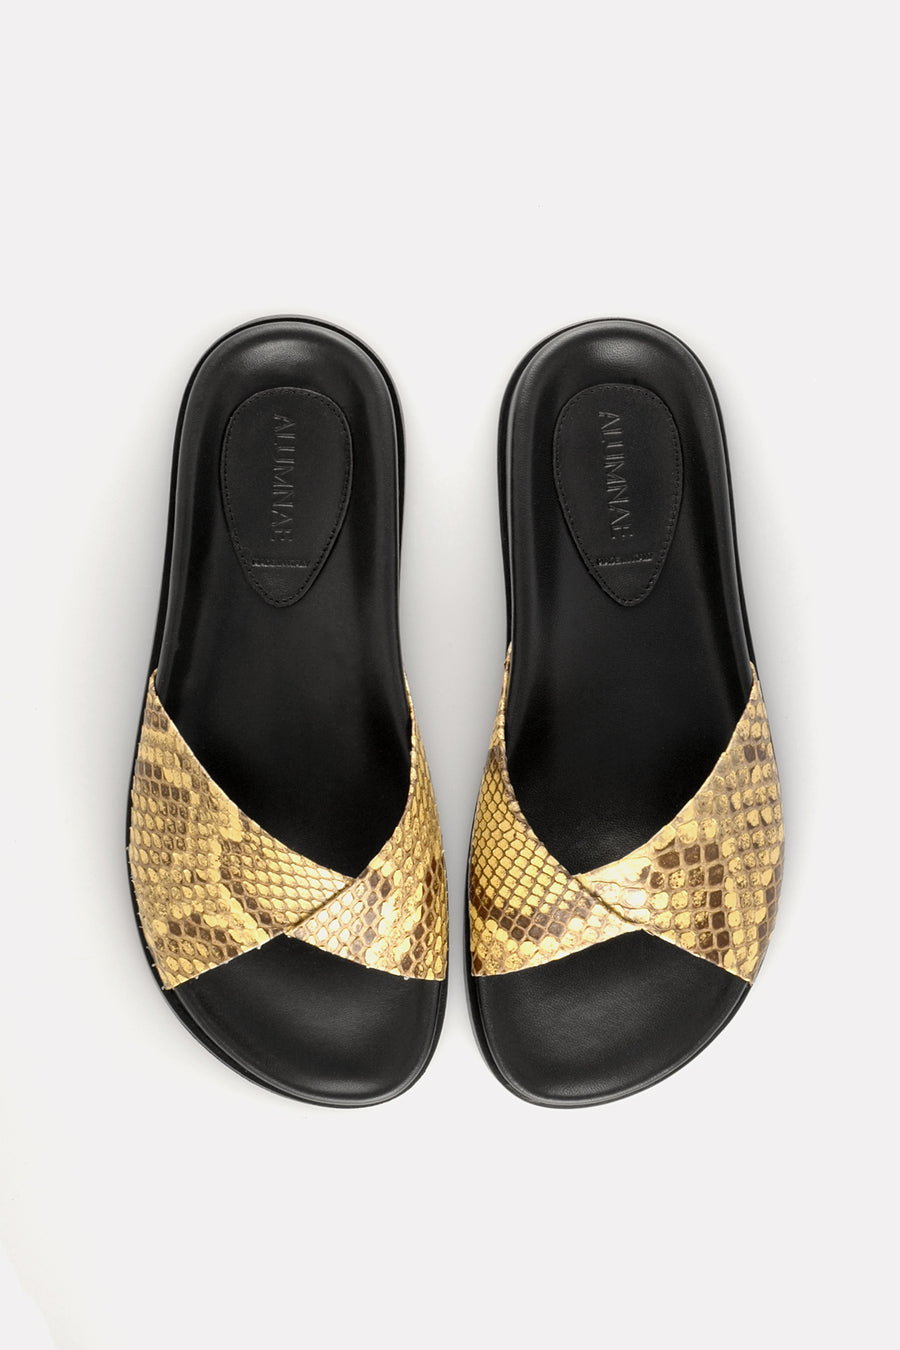 Folded Slide on Footbed Butter-Yellow Python